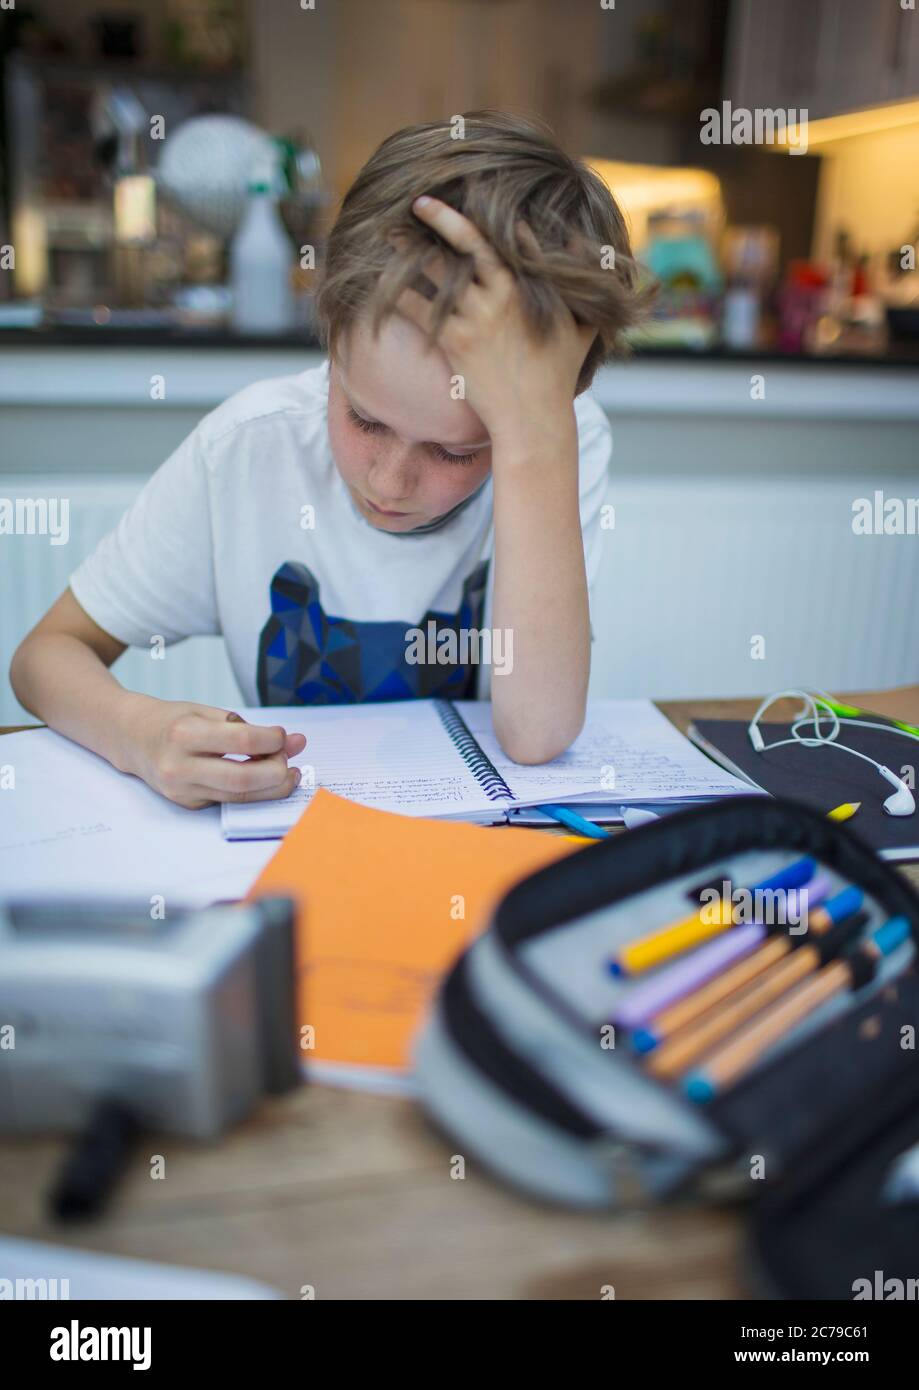 Focused boy home schooling at table Stock Photo